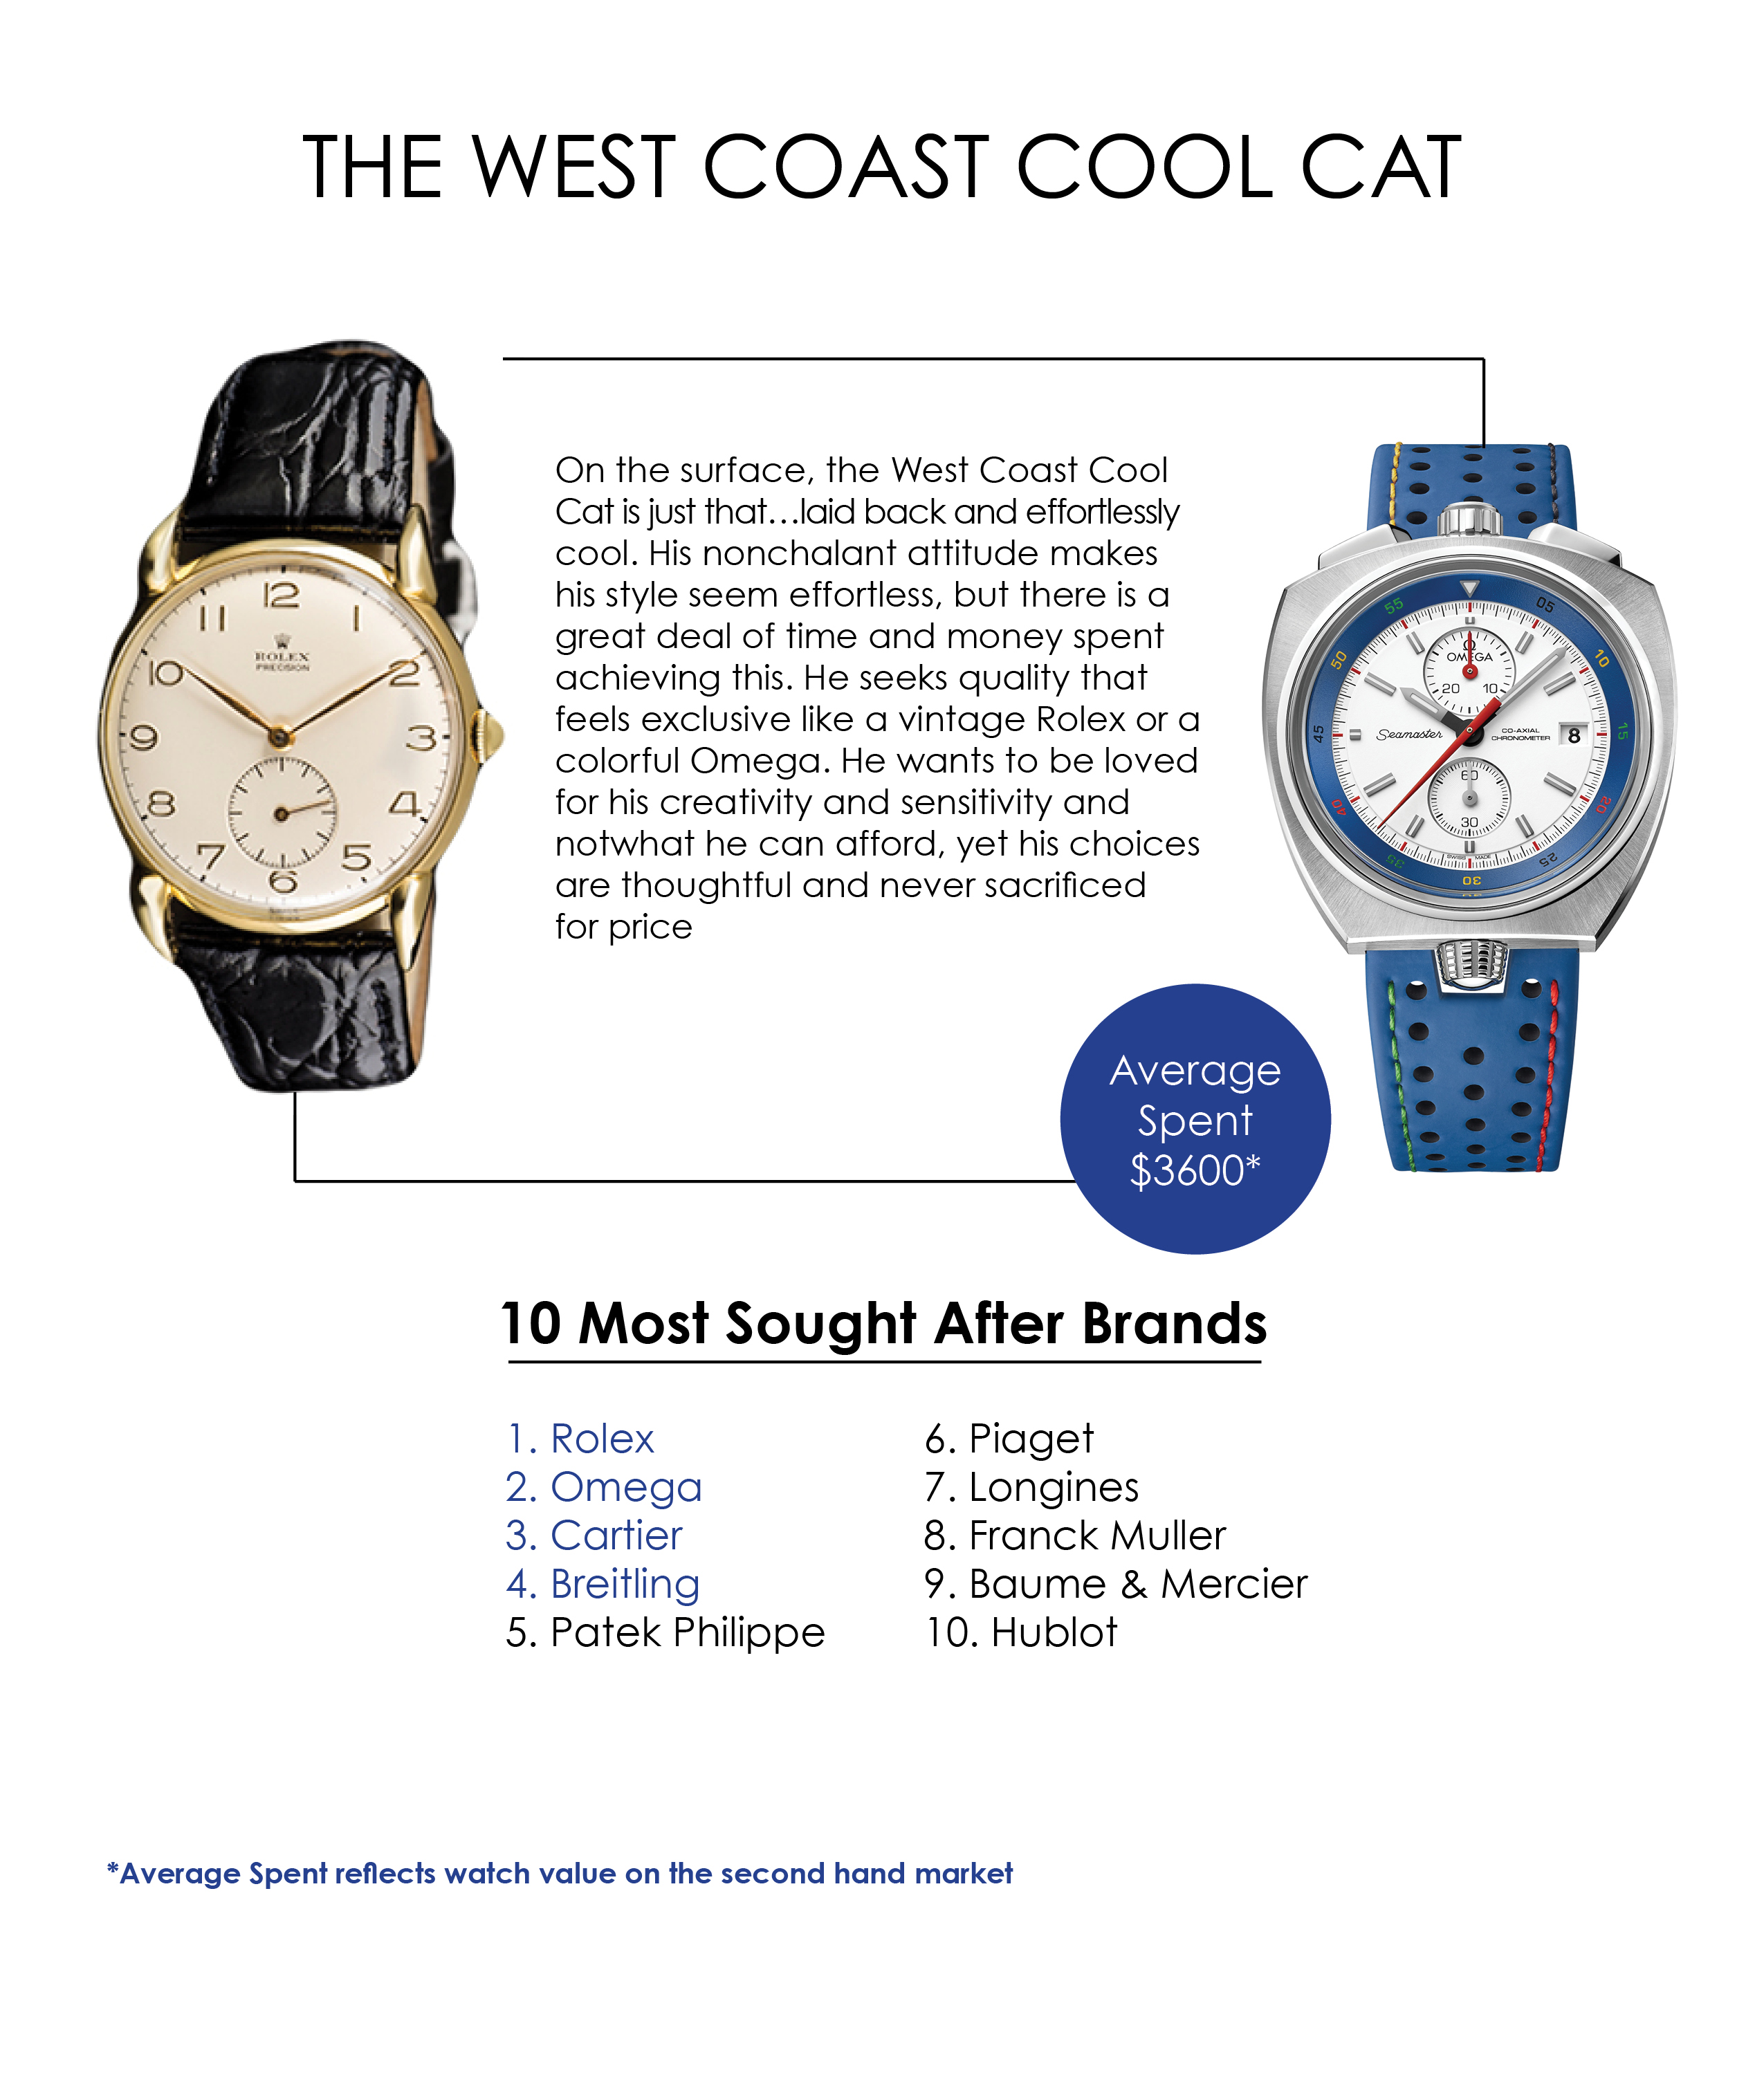 West Coast Cool Cat watch preferences